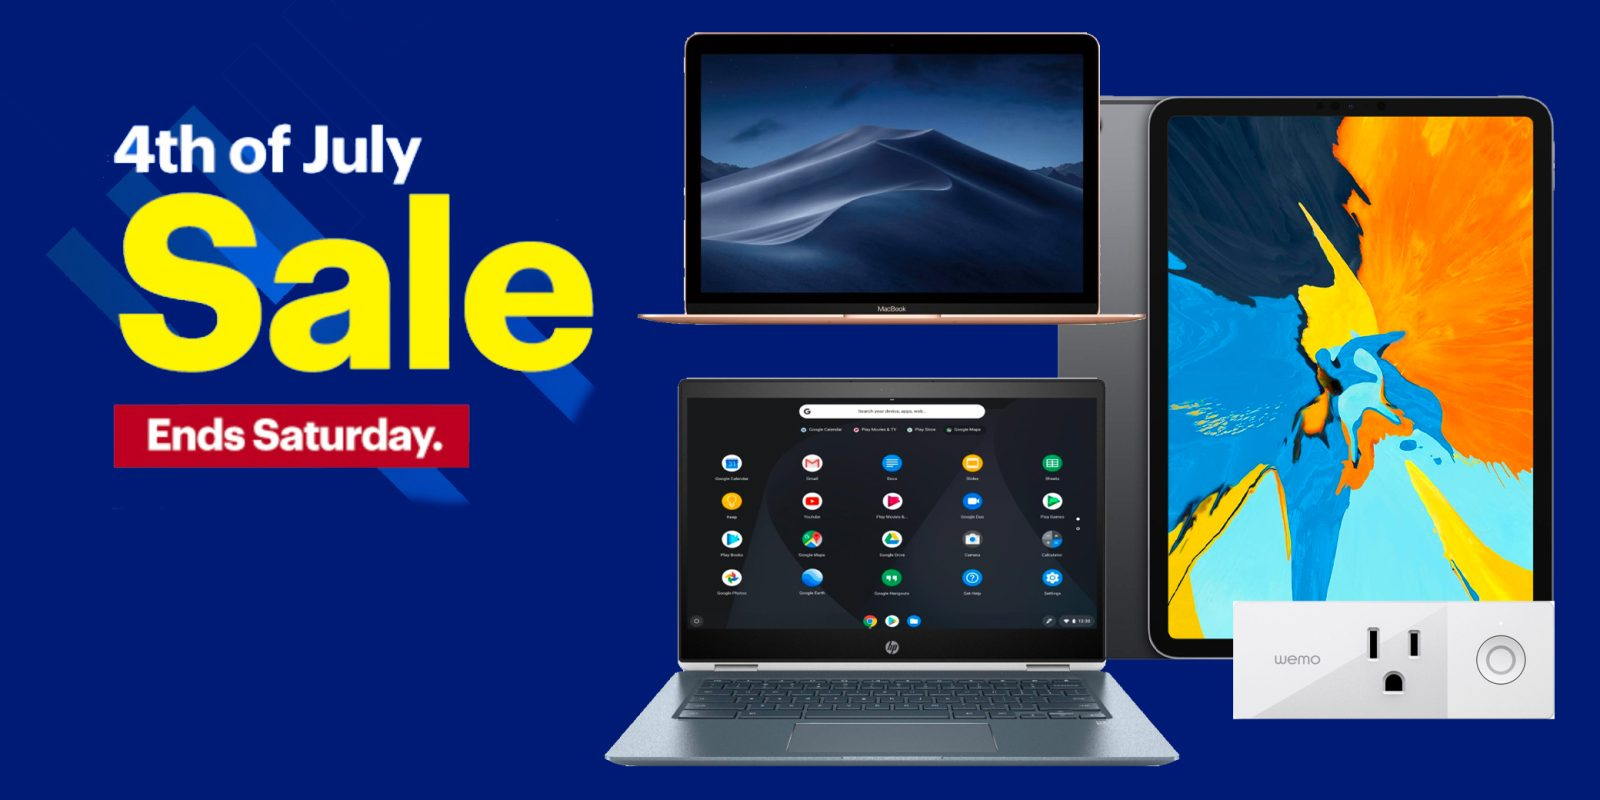 Best Buy July 4th sale now live: Save on MacBooks, iPads, Chromebooks, TVs, more